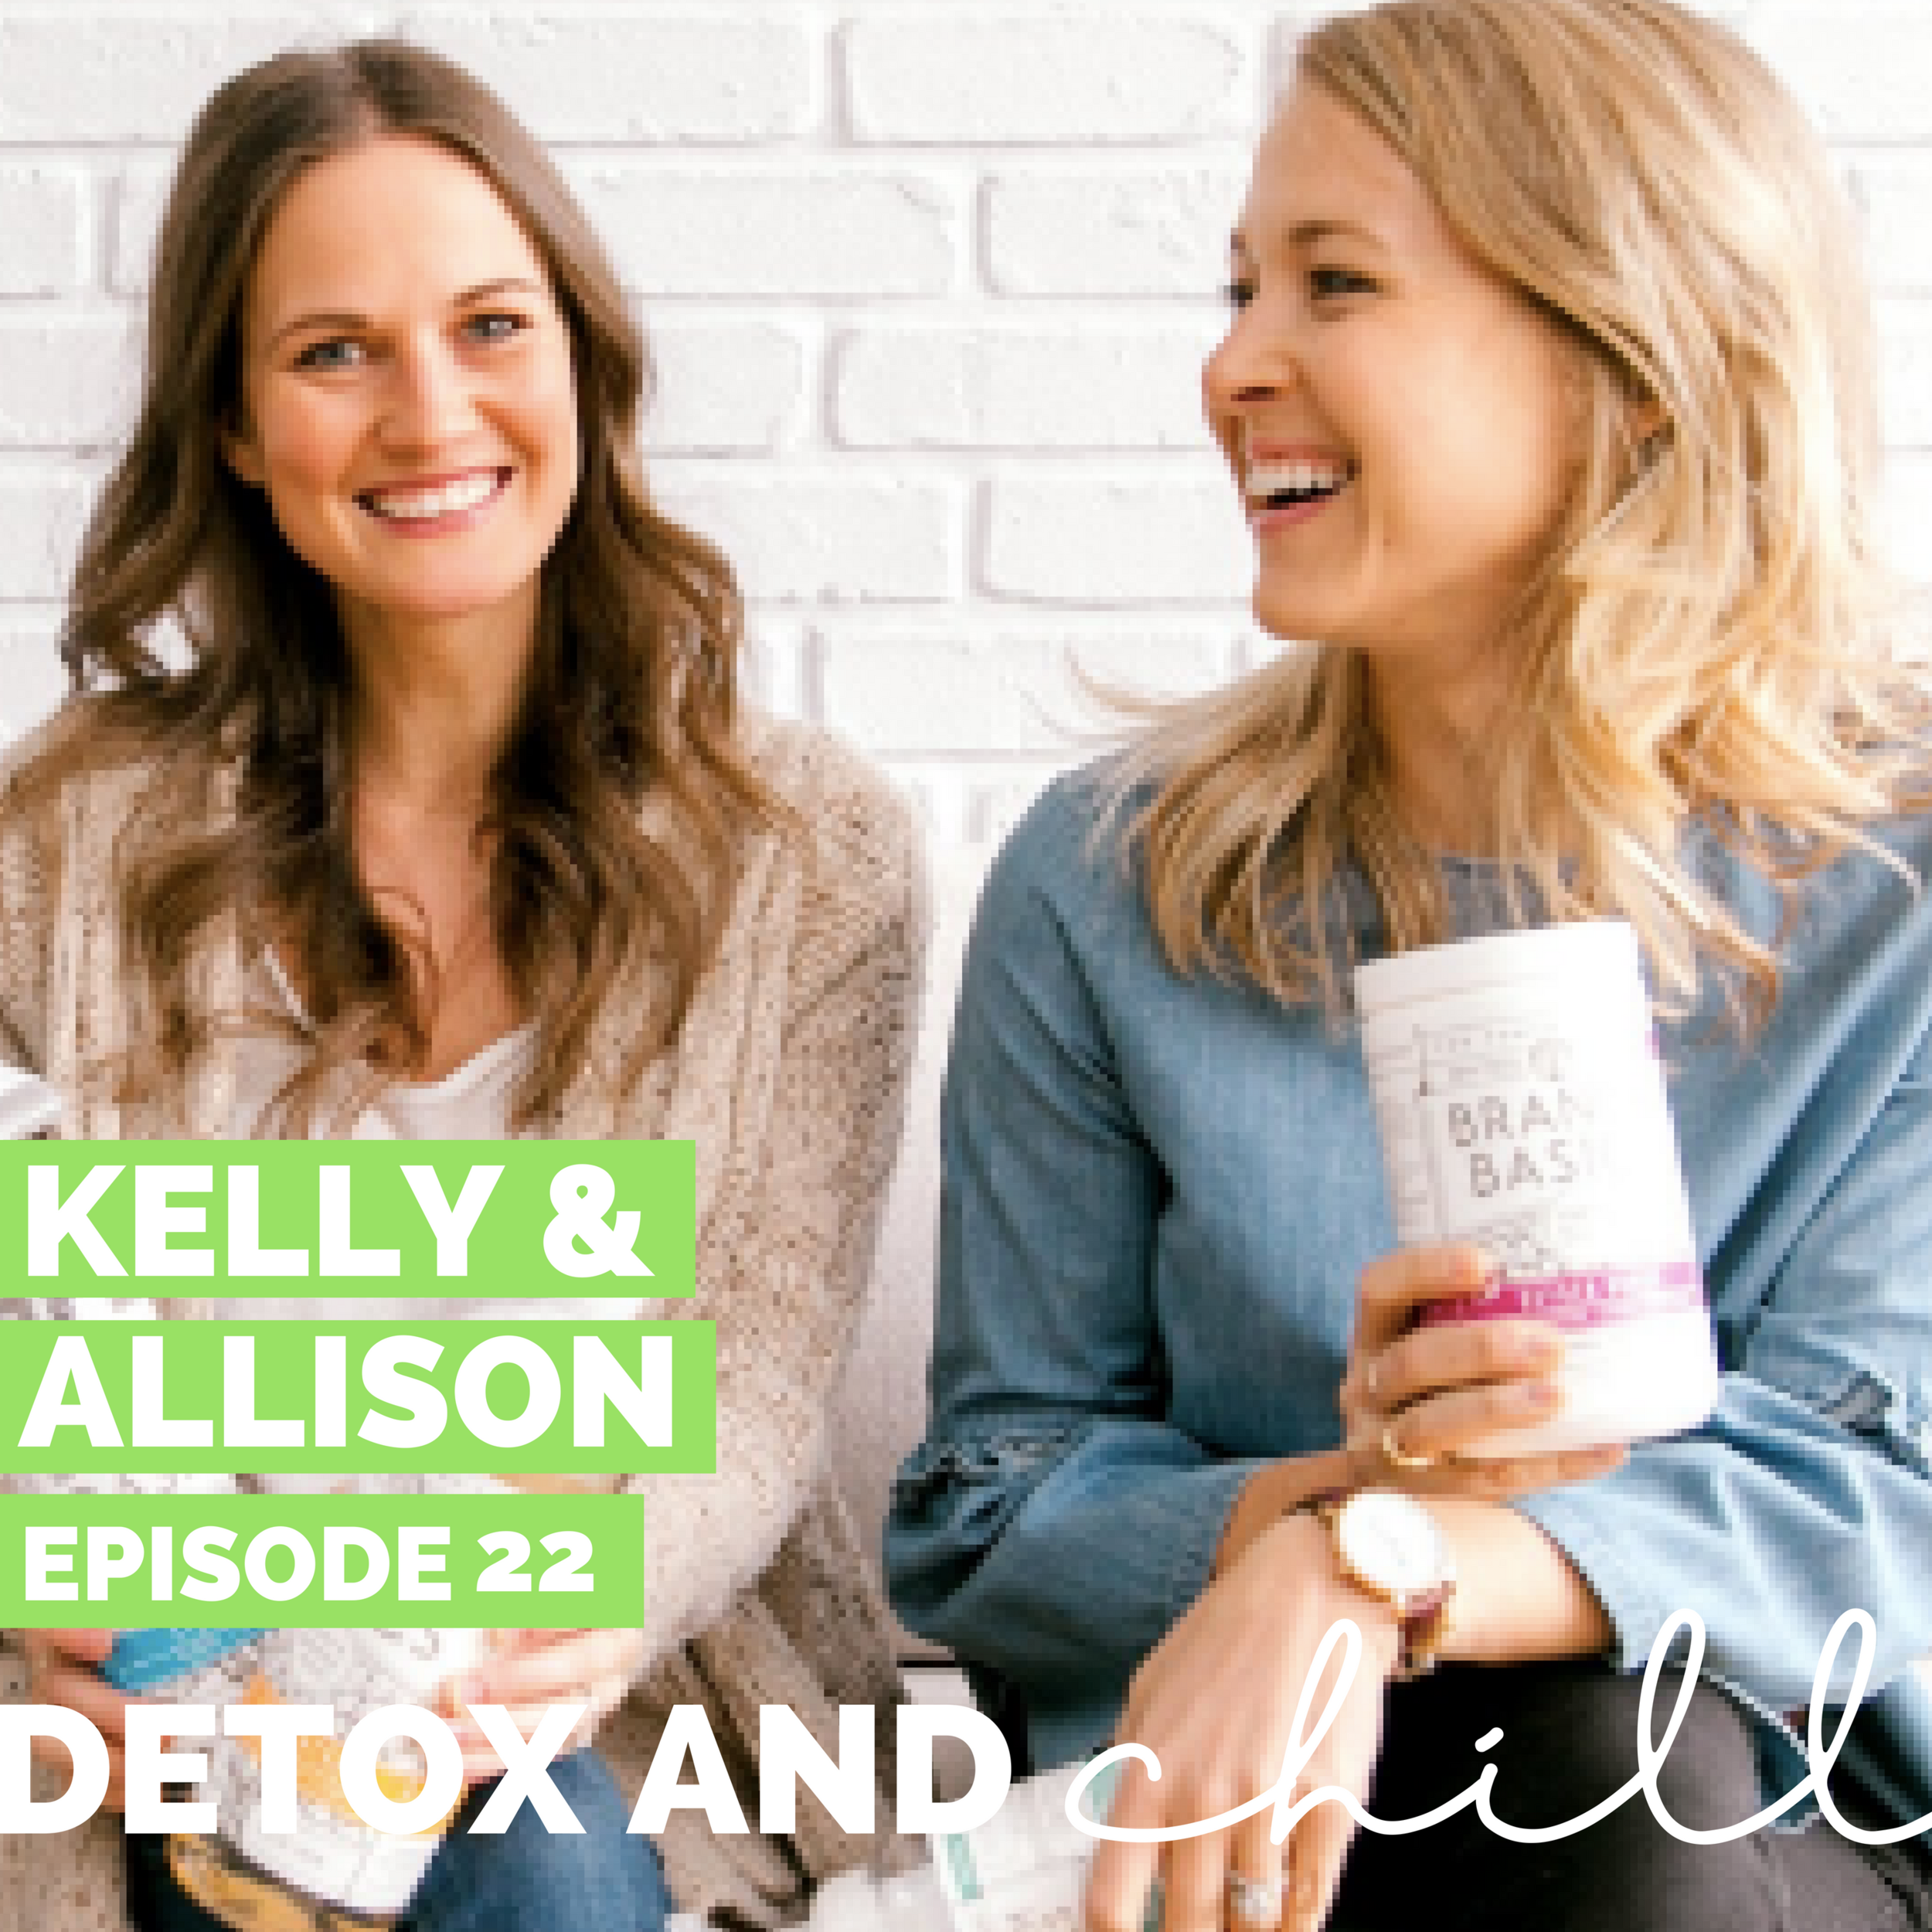 Episode #22: Kelly & Allison // Founders of Branch Basics // How Cleaning Products Have The Power to Cultivate Good Health - Hi fam! Happy new week!! We have an exciting giveaway coming up for you this week so stay tuned for that, as well as the announcement of the giveaway winner for the WELL Summit tickets! Can you tell we love giveaways?Today on the podcast we have the incredible Allison Evans and Kelly Love of Branch Basics. As Beck and I move towards cleaning up all of our household and beauty products, we learned about Branch Basics and their amazing cleaning products. We immediately knew we needed to share their founders' wisdom and incredible stories on the podcast. Allison and Kelly are two amazing women who do it ALL and have such a clear passion for what their brand.So what is the Branch Basics brand? Kelly and Allison believe choices like the food we put in our bodies, the paint we put on our walls, and the cleaners we use around our homes have power; the power to rob us of good health or to cultivate it.As we discuss in this episode, Allison and Kelly have experienced this first-hand. Whether it was avoiding a looming kidney transplant, recovering a severely ill son that was medically deemed unrecoverable, being freed of debilitating mystery pain, overcoming long-term hormonal complications, or simply getting rid of cramps and dry eyes, their lives were transformed because of the power of real food and a non-toxic environment.Branch Basics is their passion project to help others do the same.So why did Allison and Kelly choose to focus on cleaning products? Well, because 1) cleaners and laundry detergents have a major impact on our air quality and overall health, 2) switching to healthy cleaning is much easier than kicking a sugar addiction, 3) the world is in need of truly safe cleaners that work and 4) everyone cleans!Suffice it to say that Beck and I both believe in this brand SO much, and we seriously could have talked to these women for hours. We wa